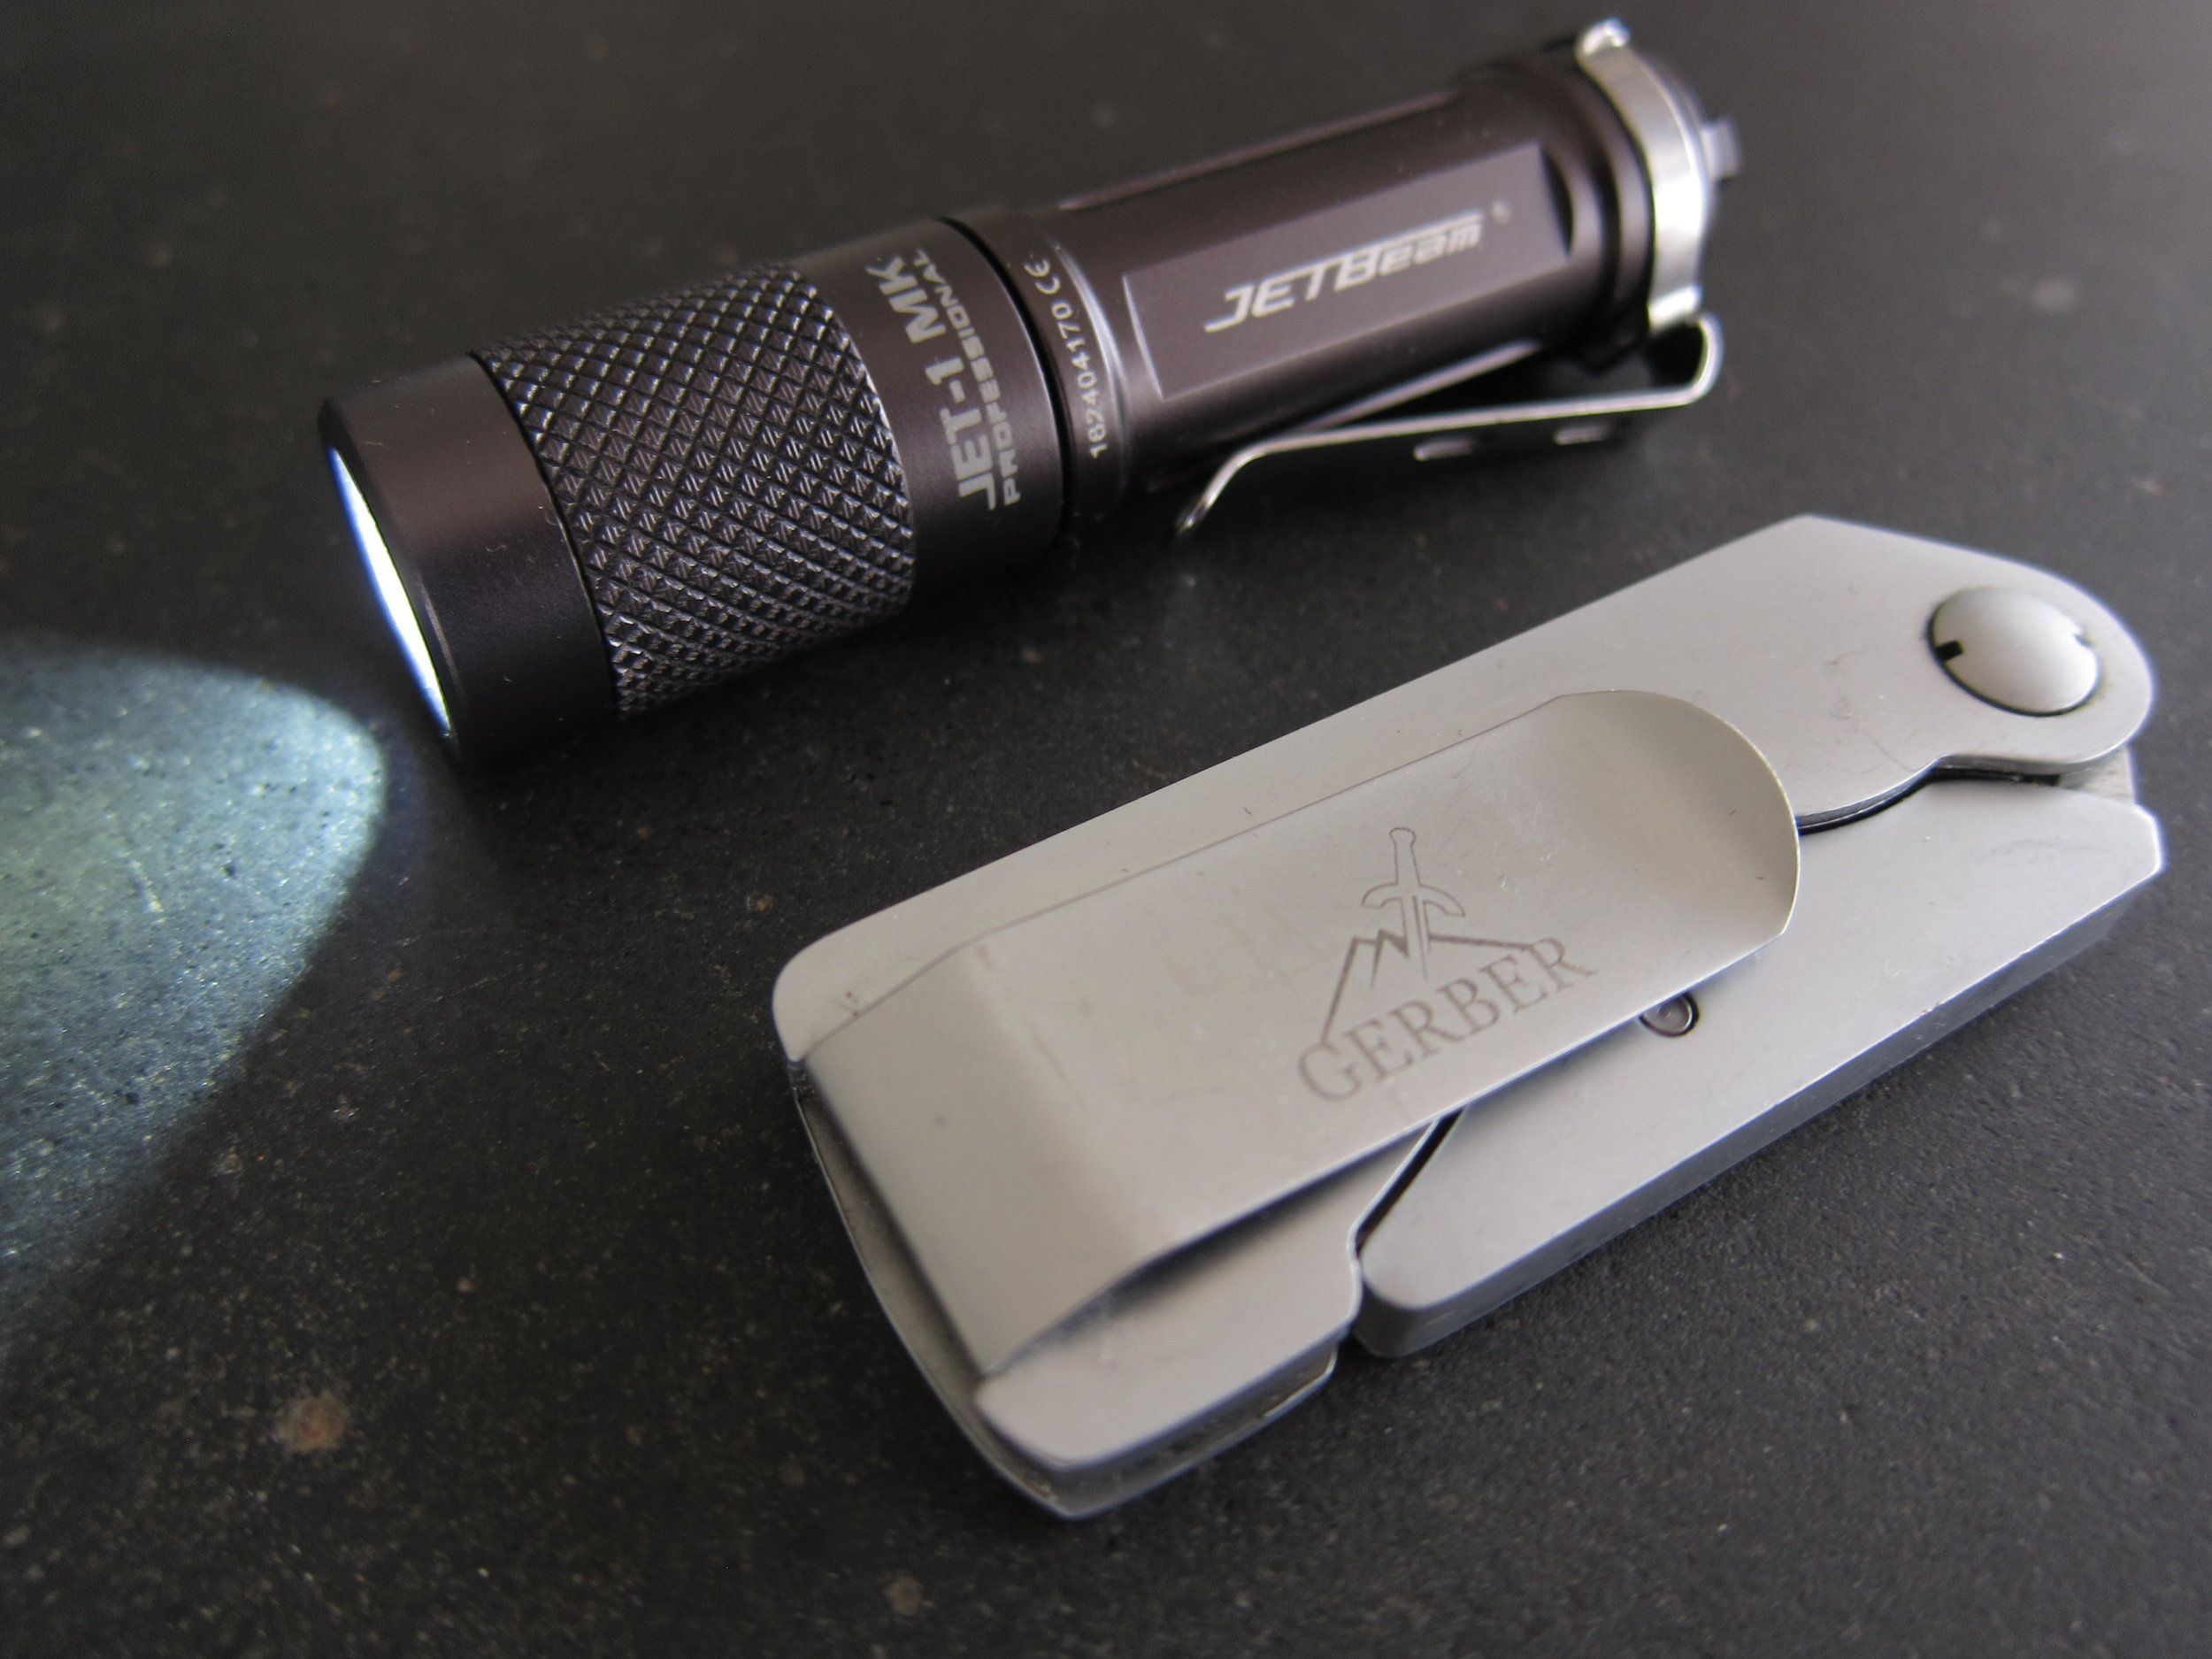 Jetbeam Jet-1 MK Professional with the equally diminutive Gerber EAB knife.